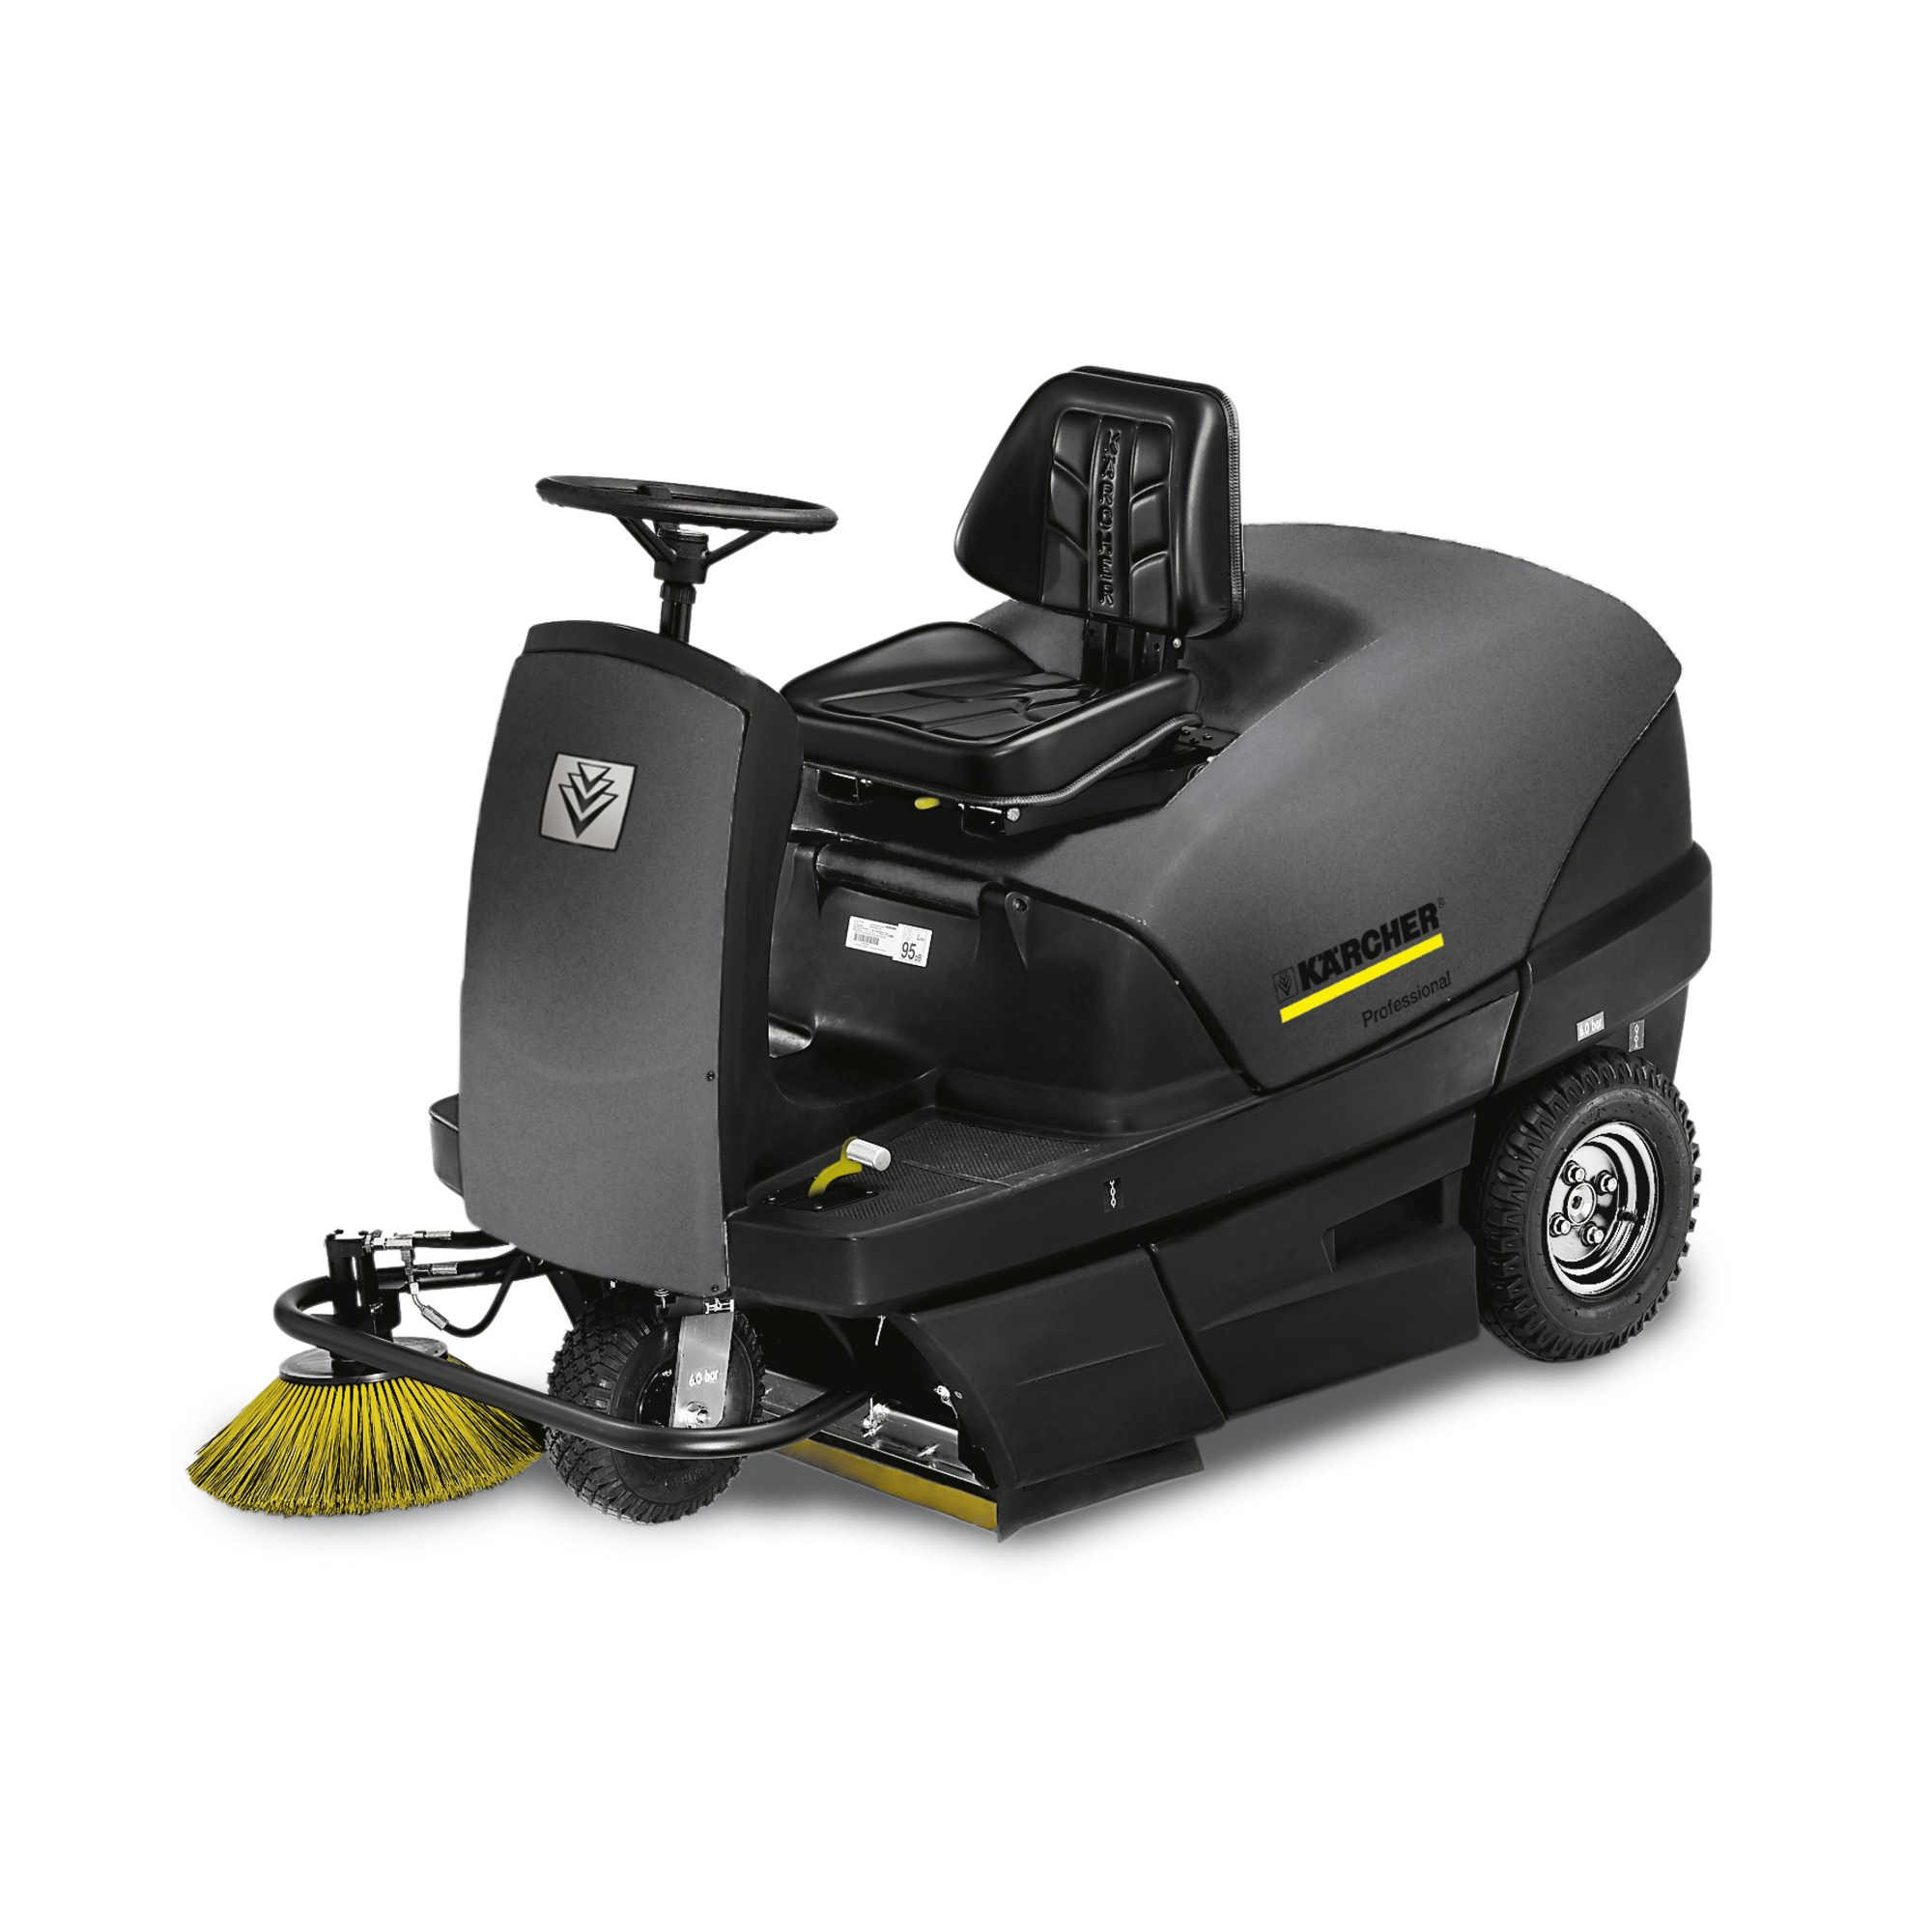 KM 100/100 R D 1.280-115.0 KARCHER - KARCHER PREMIER CENTER